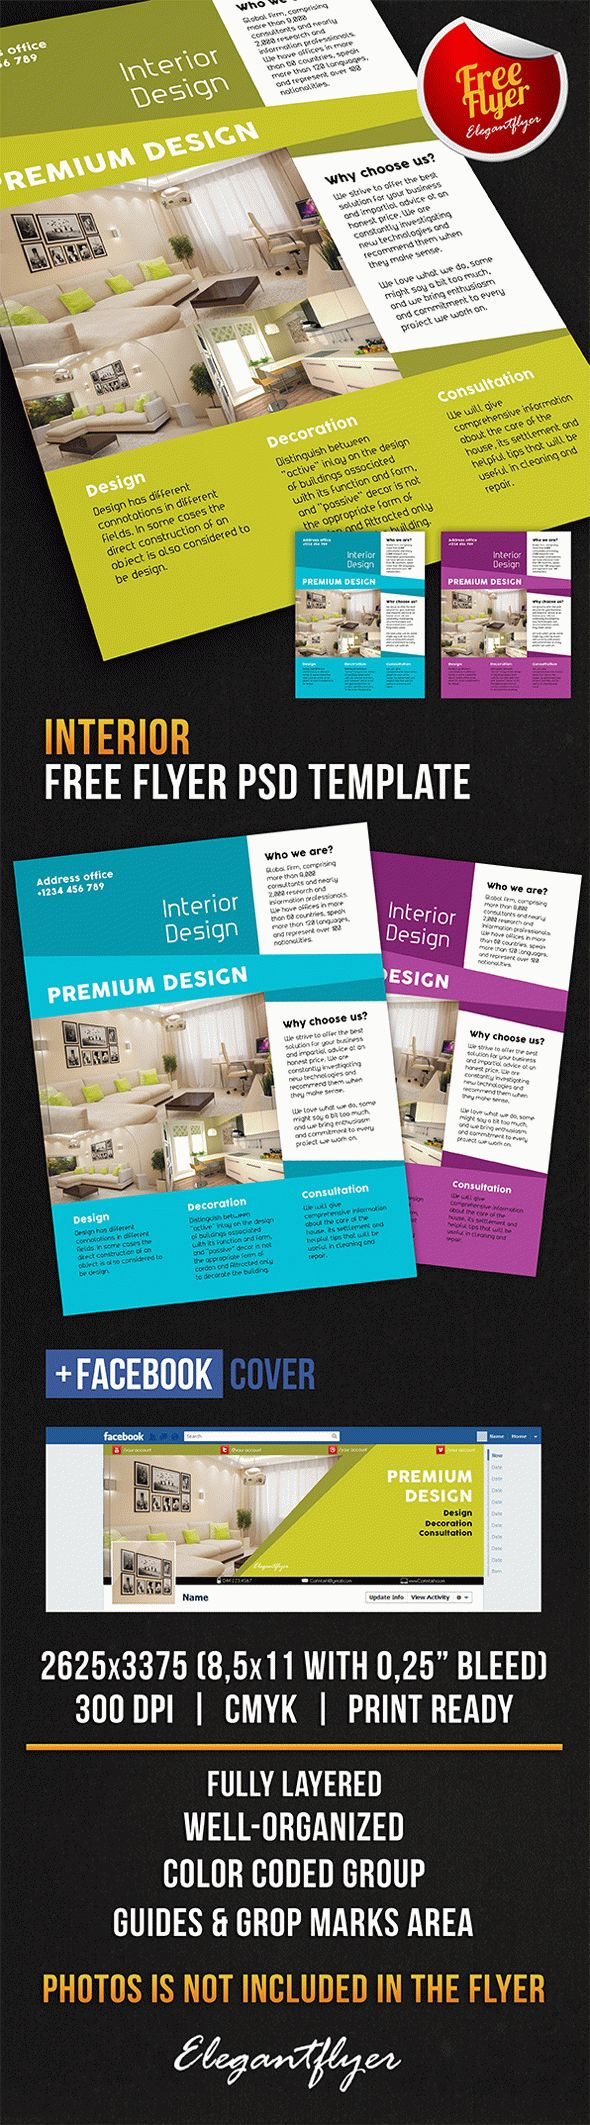 interior free flyer psd template facebook cover 1500 free psd flyer templates. Black Bedroom Furniture Sets. Home Design Ideas